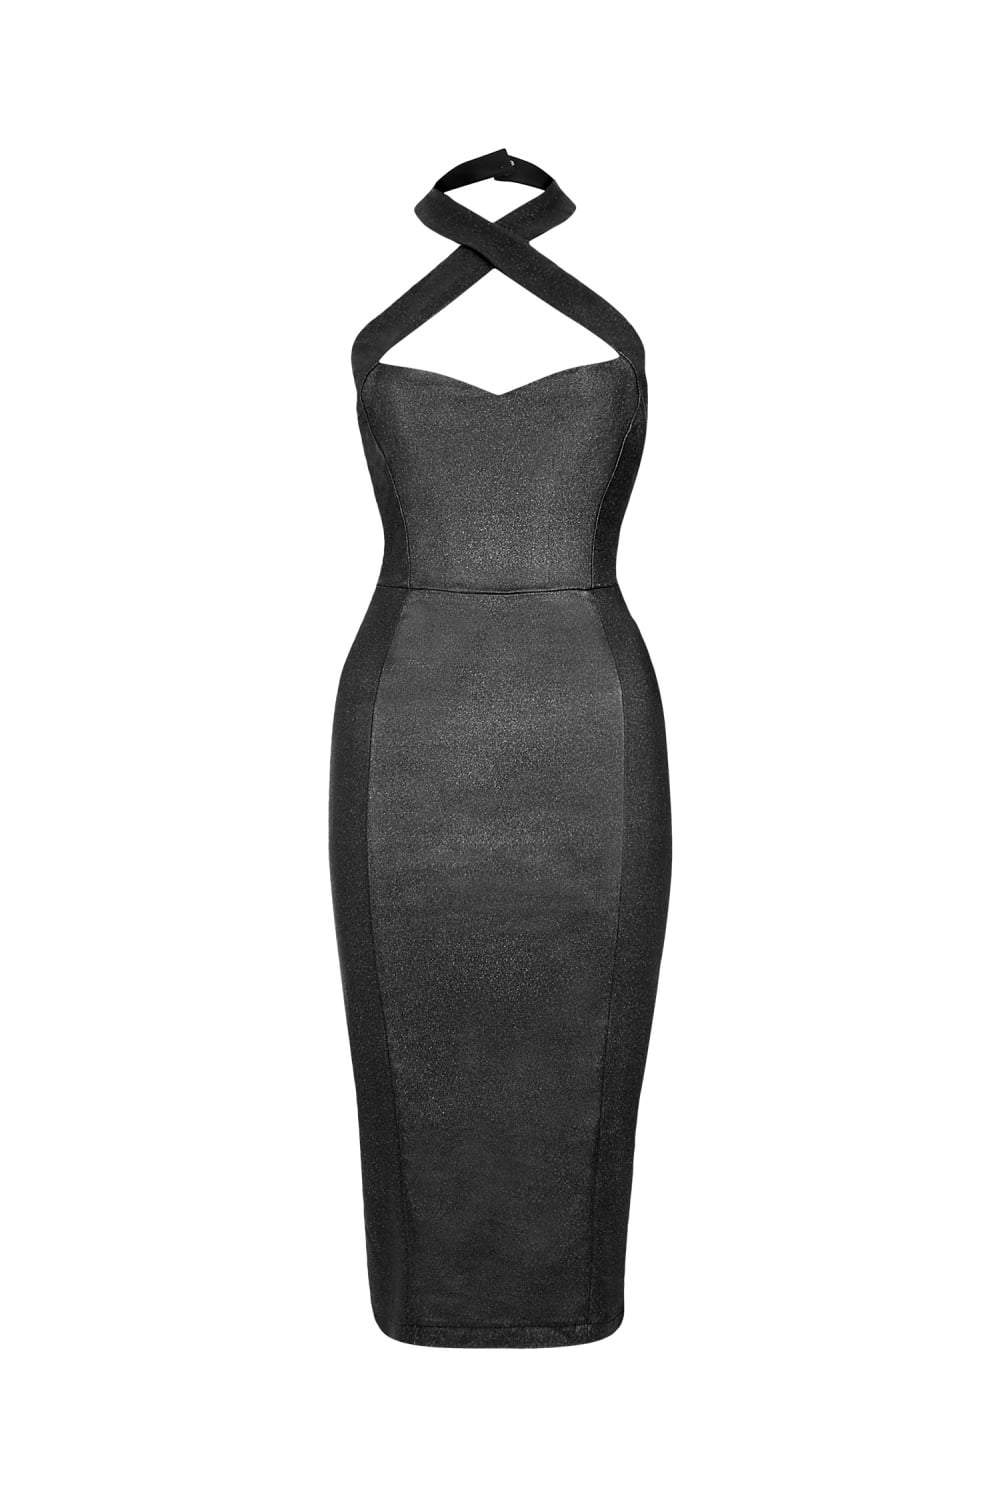 Collectif Vegas Pencil Dress - Bohemian Finds